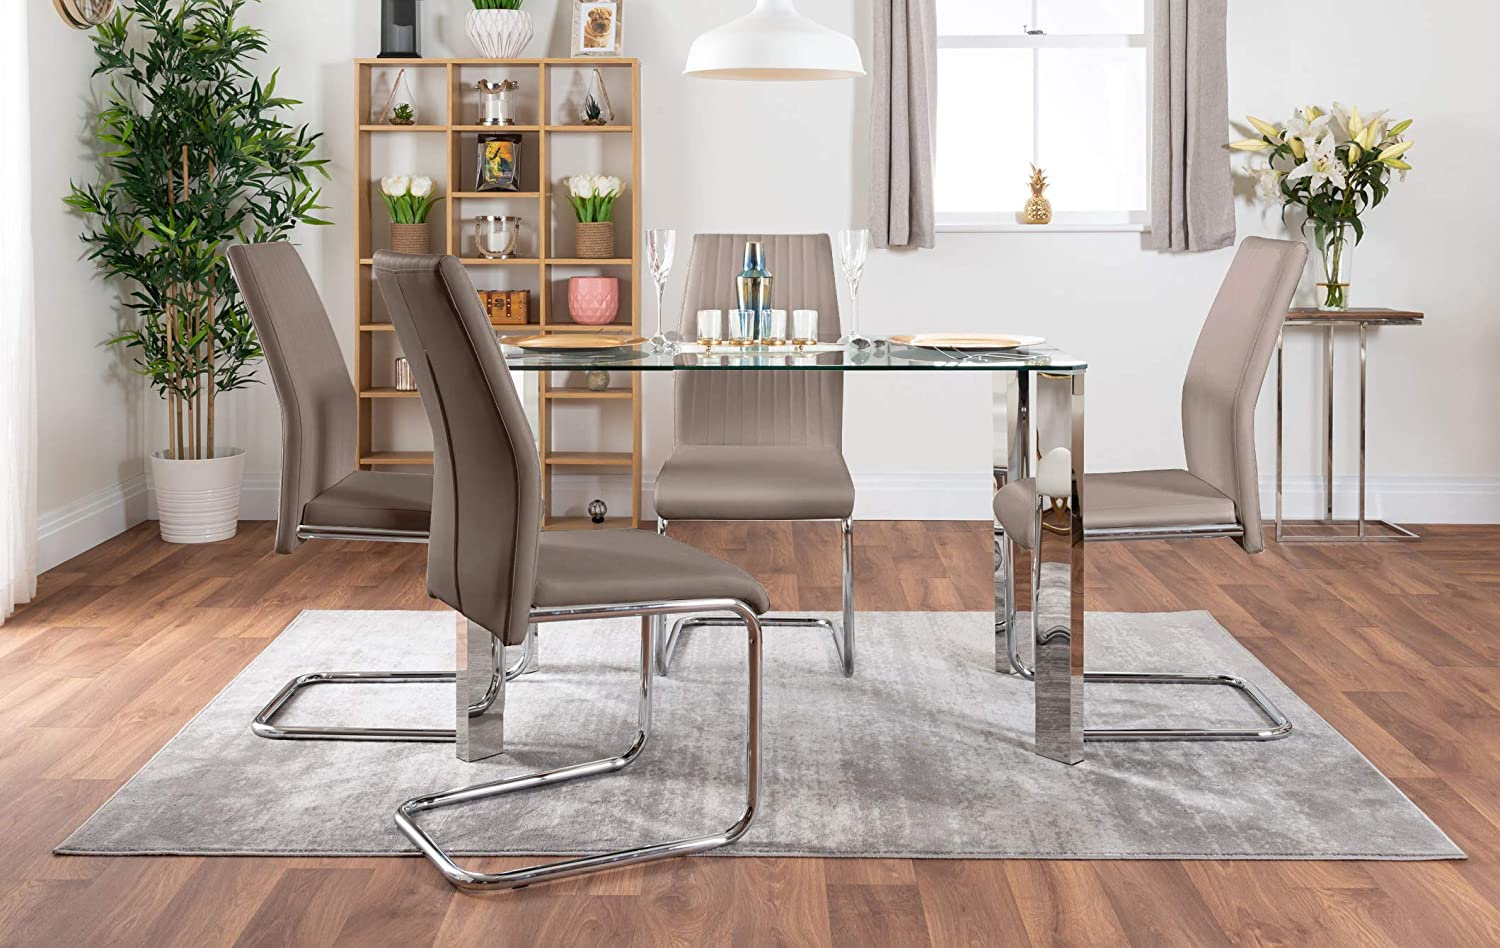 Dining Table Only Furniturebox UK Lucia 4 Clear Glass And Chrome Metal Modern Stylish Dining Table And 4 Stylish Lorenzo Dining Chairs Set